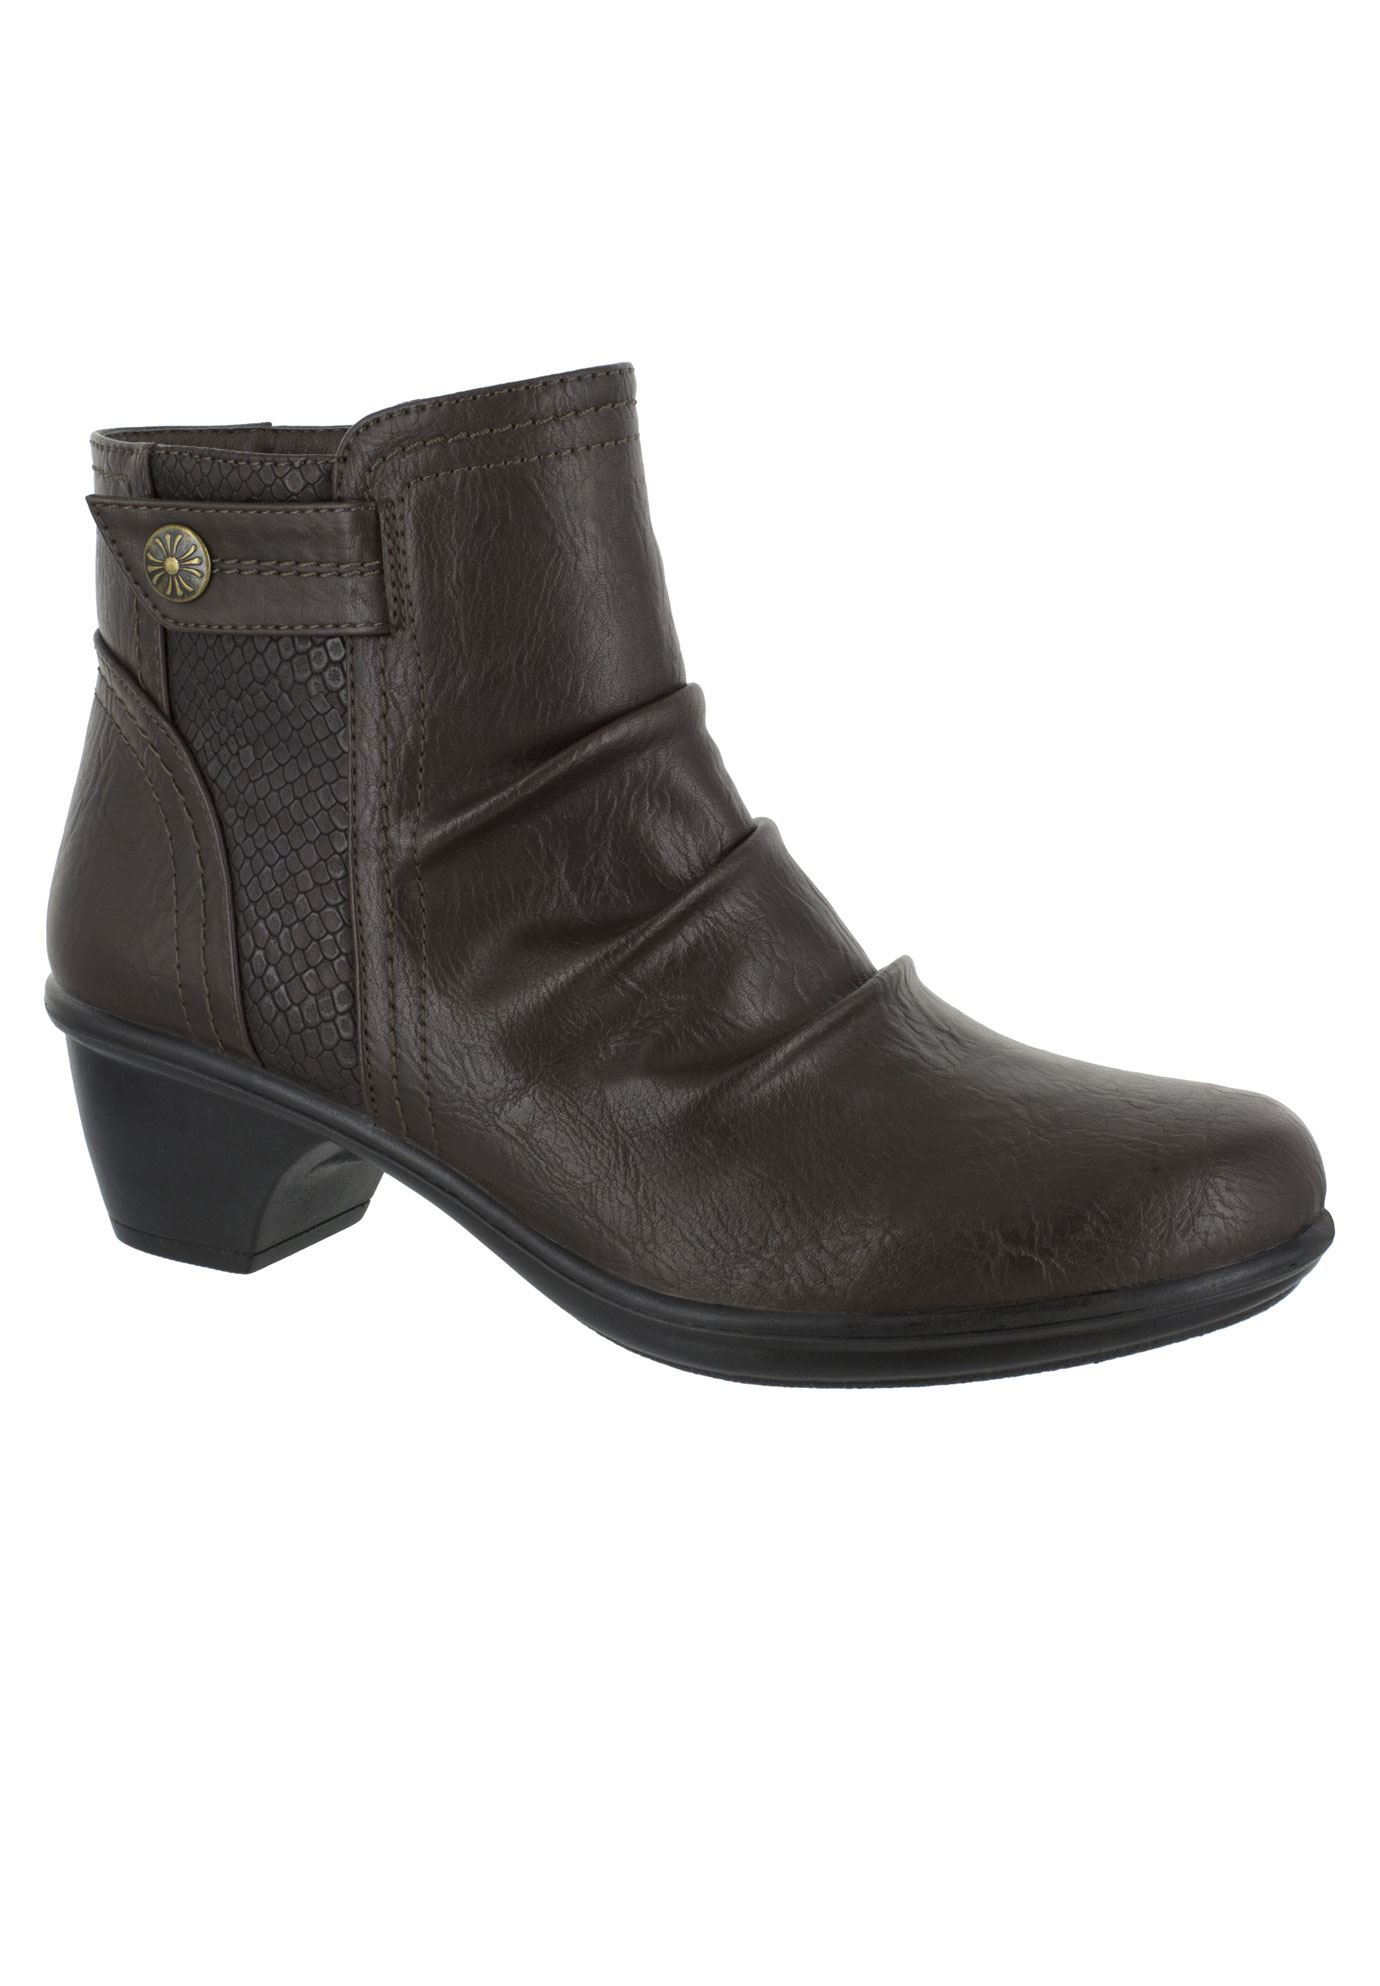 Draft Booties by Easy Street®,